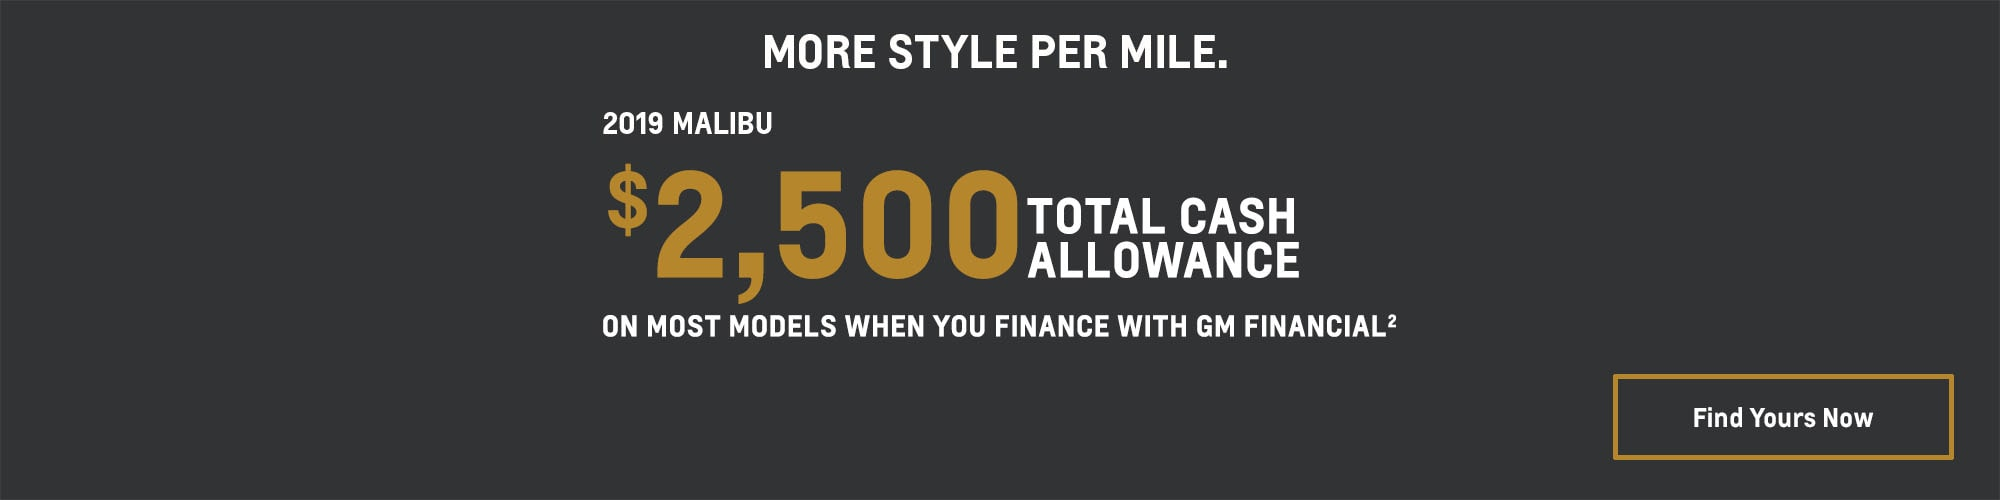 2019 Malibu: $2,500 Total Cash Allowance